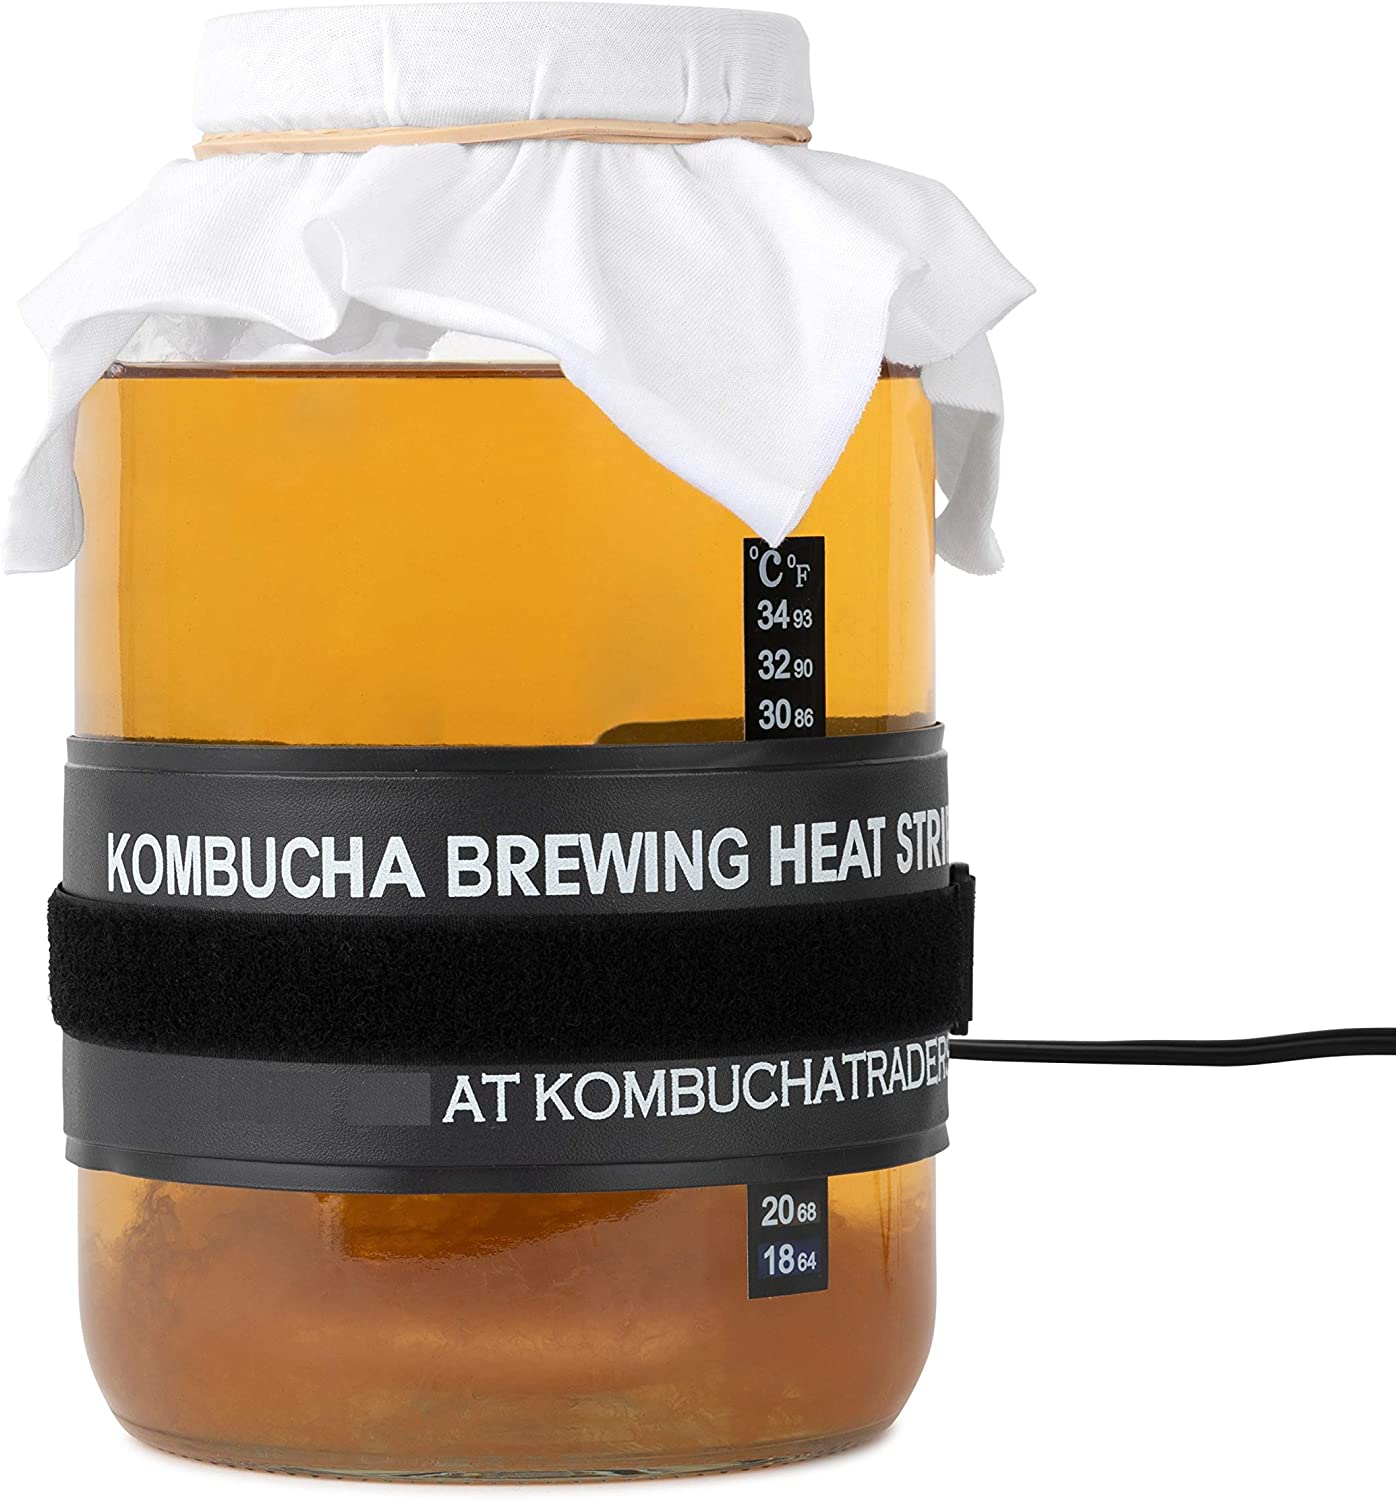 Kombucha Starter Kit (Deluxe with Heating Mat) SCOBY, Jar, PH Test Strips, Fermenting Ingredients and more